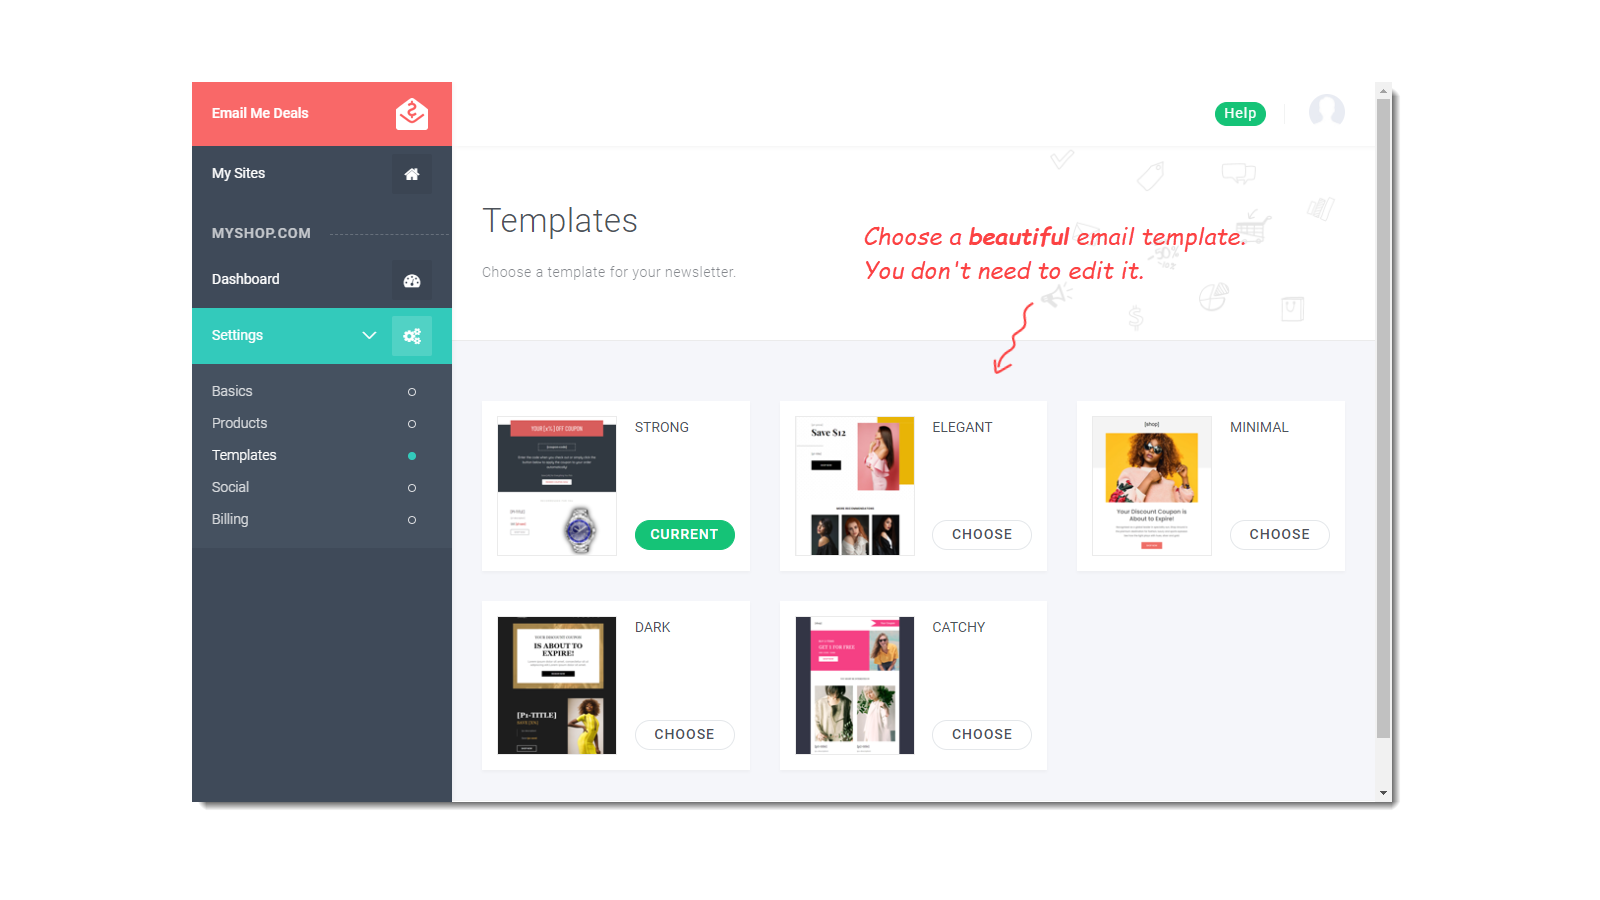 Choose an email template that you love.